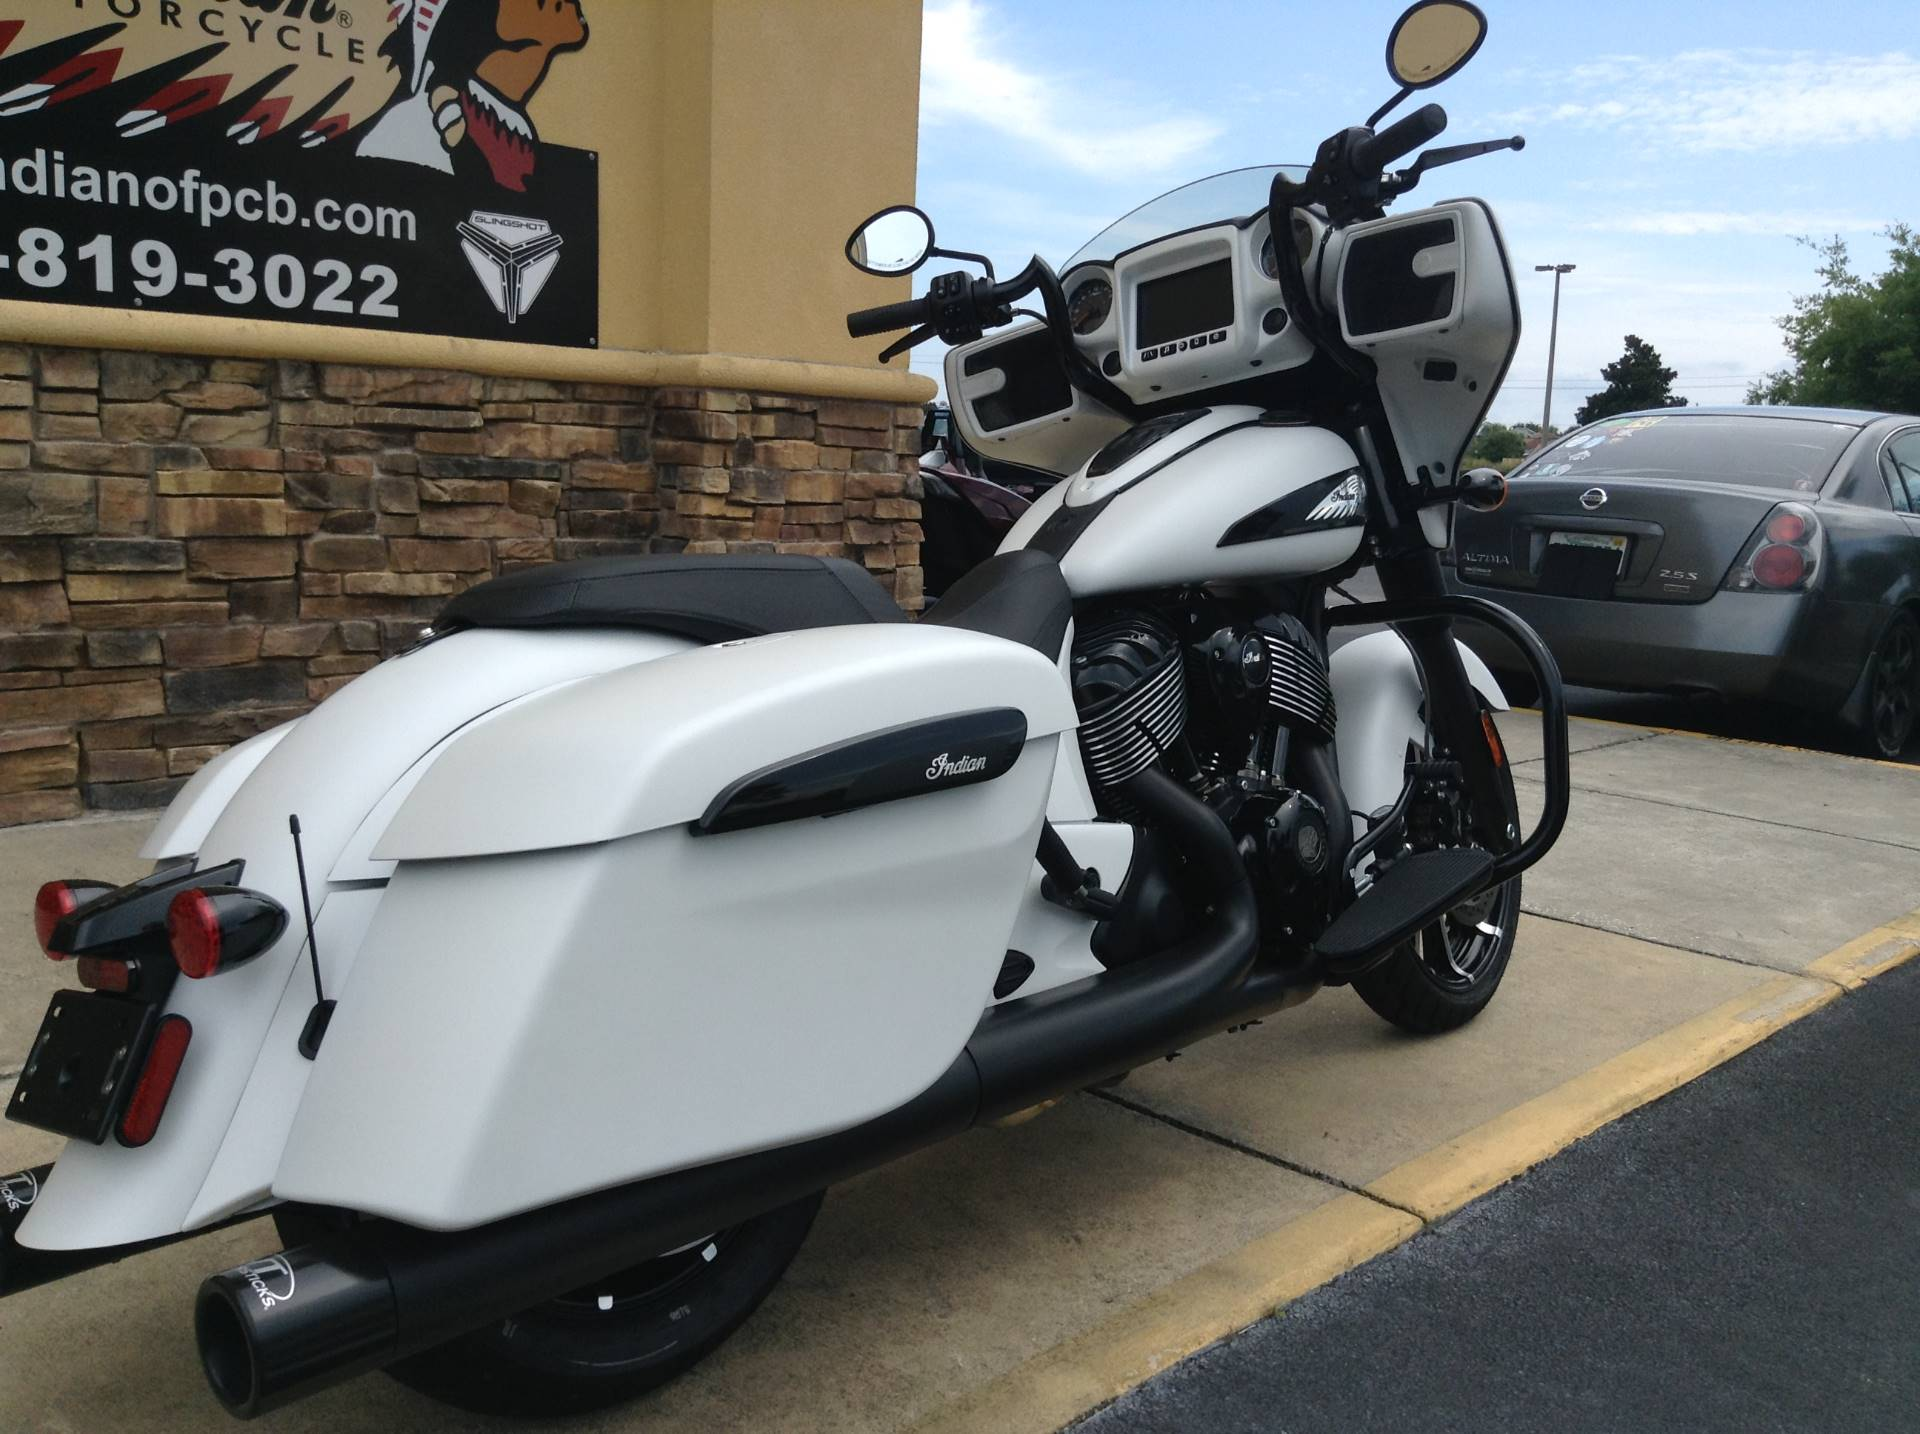 2019 Indian CHIEFTAIN in Panama City Beach, Florida - Photo 5